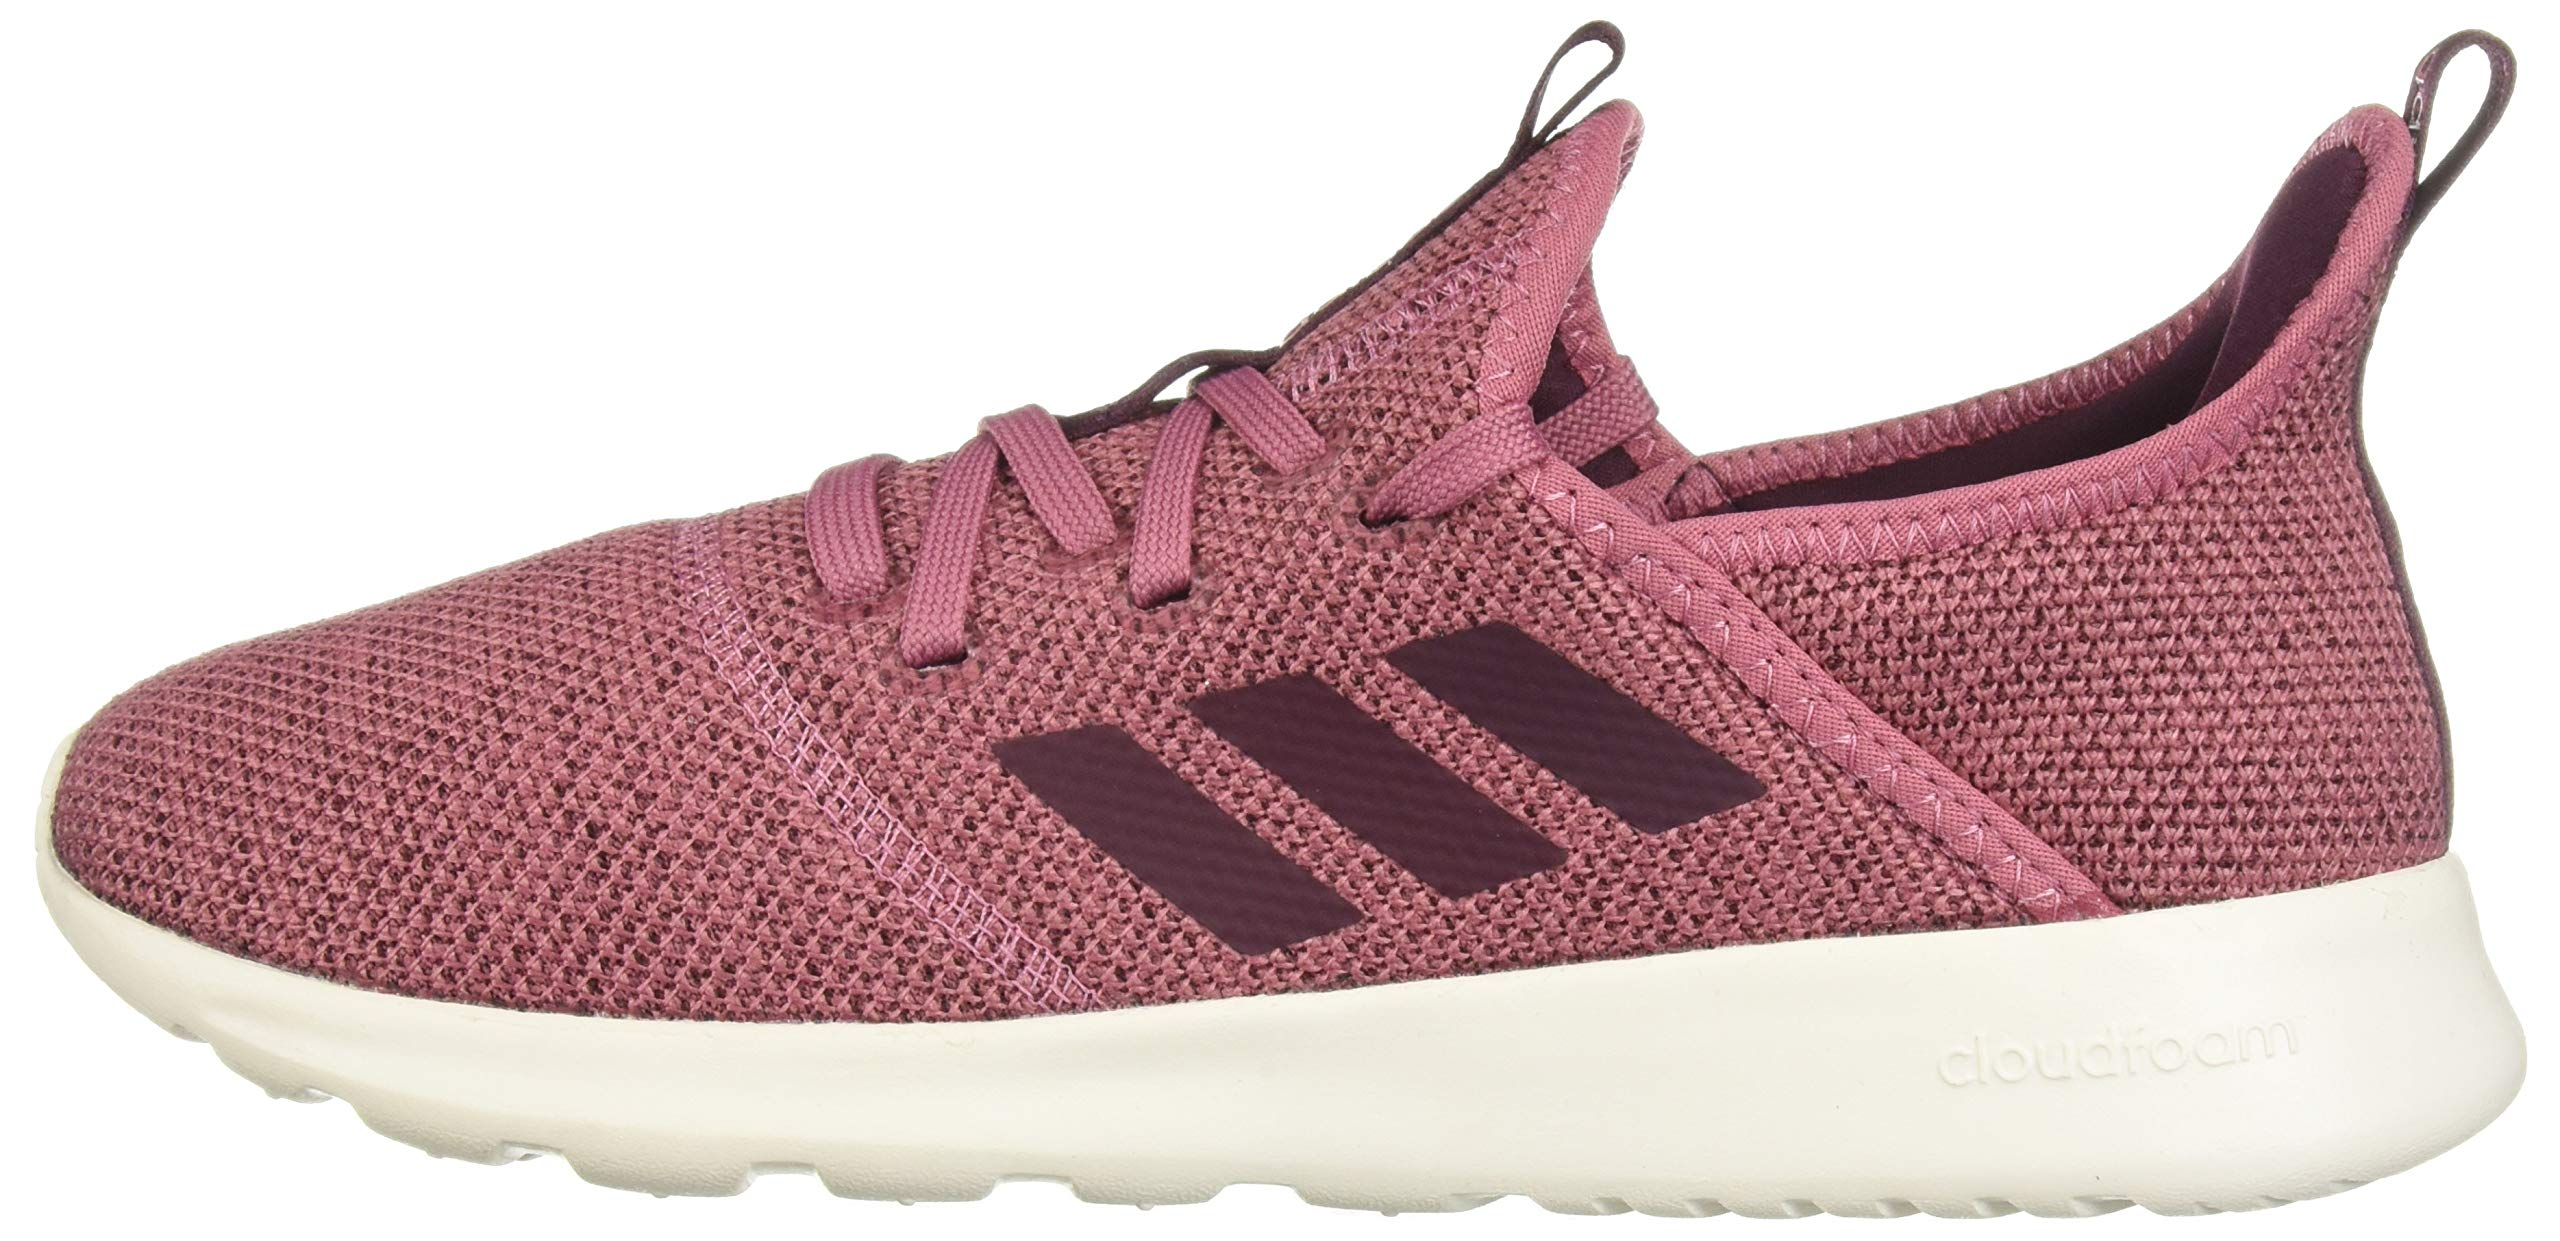 adidas Performance Women's Cloudfoam Pure Running Shoe, Maroon/Maroon/White, 5 M US by adidas (Image #5)